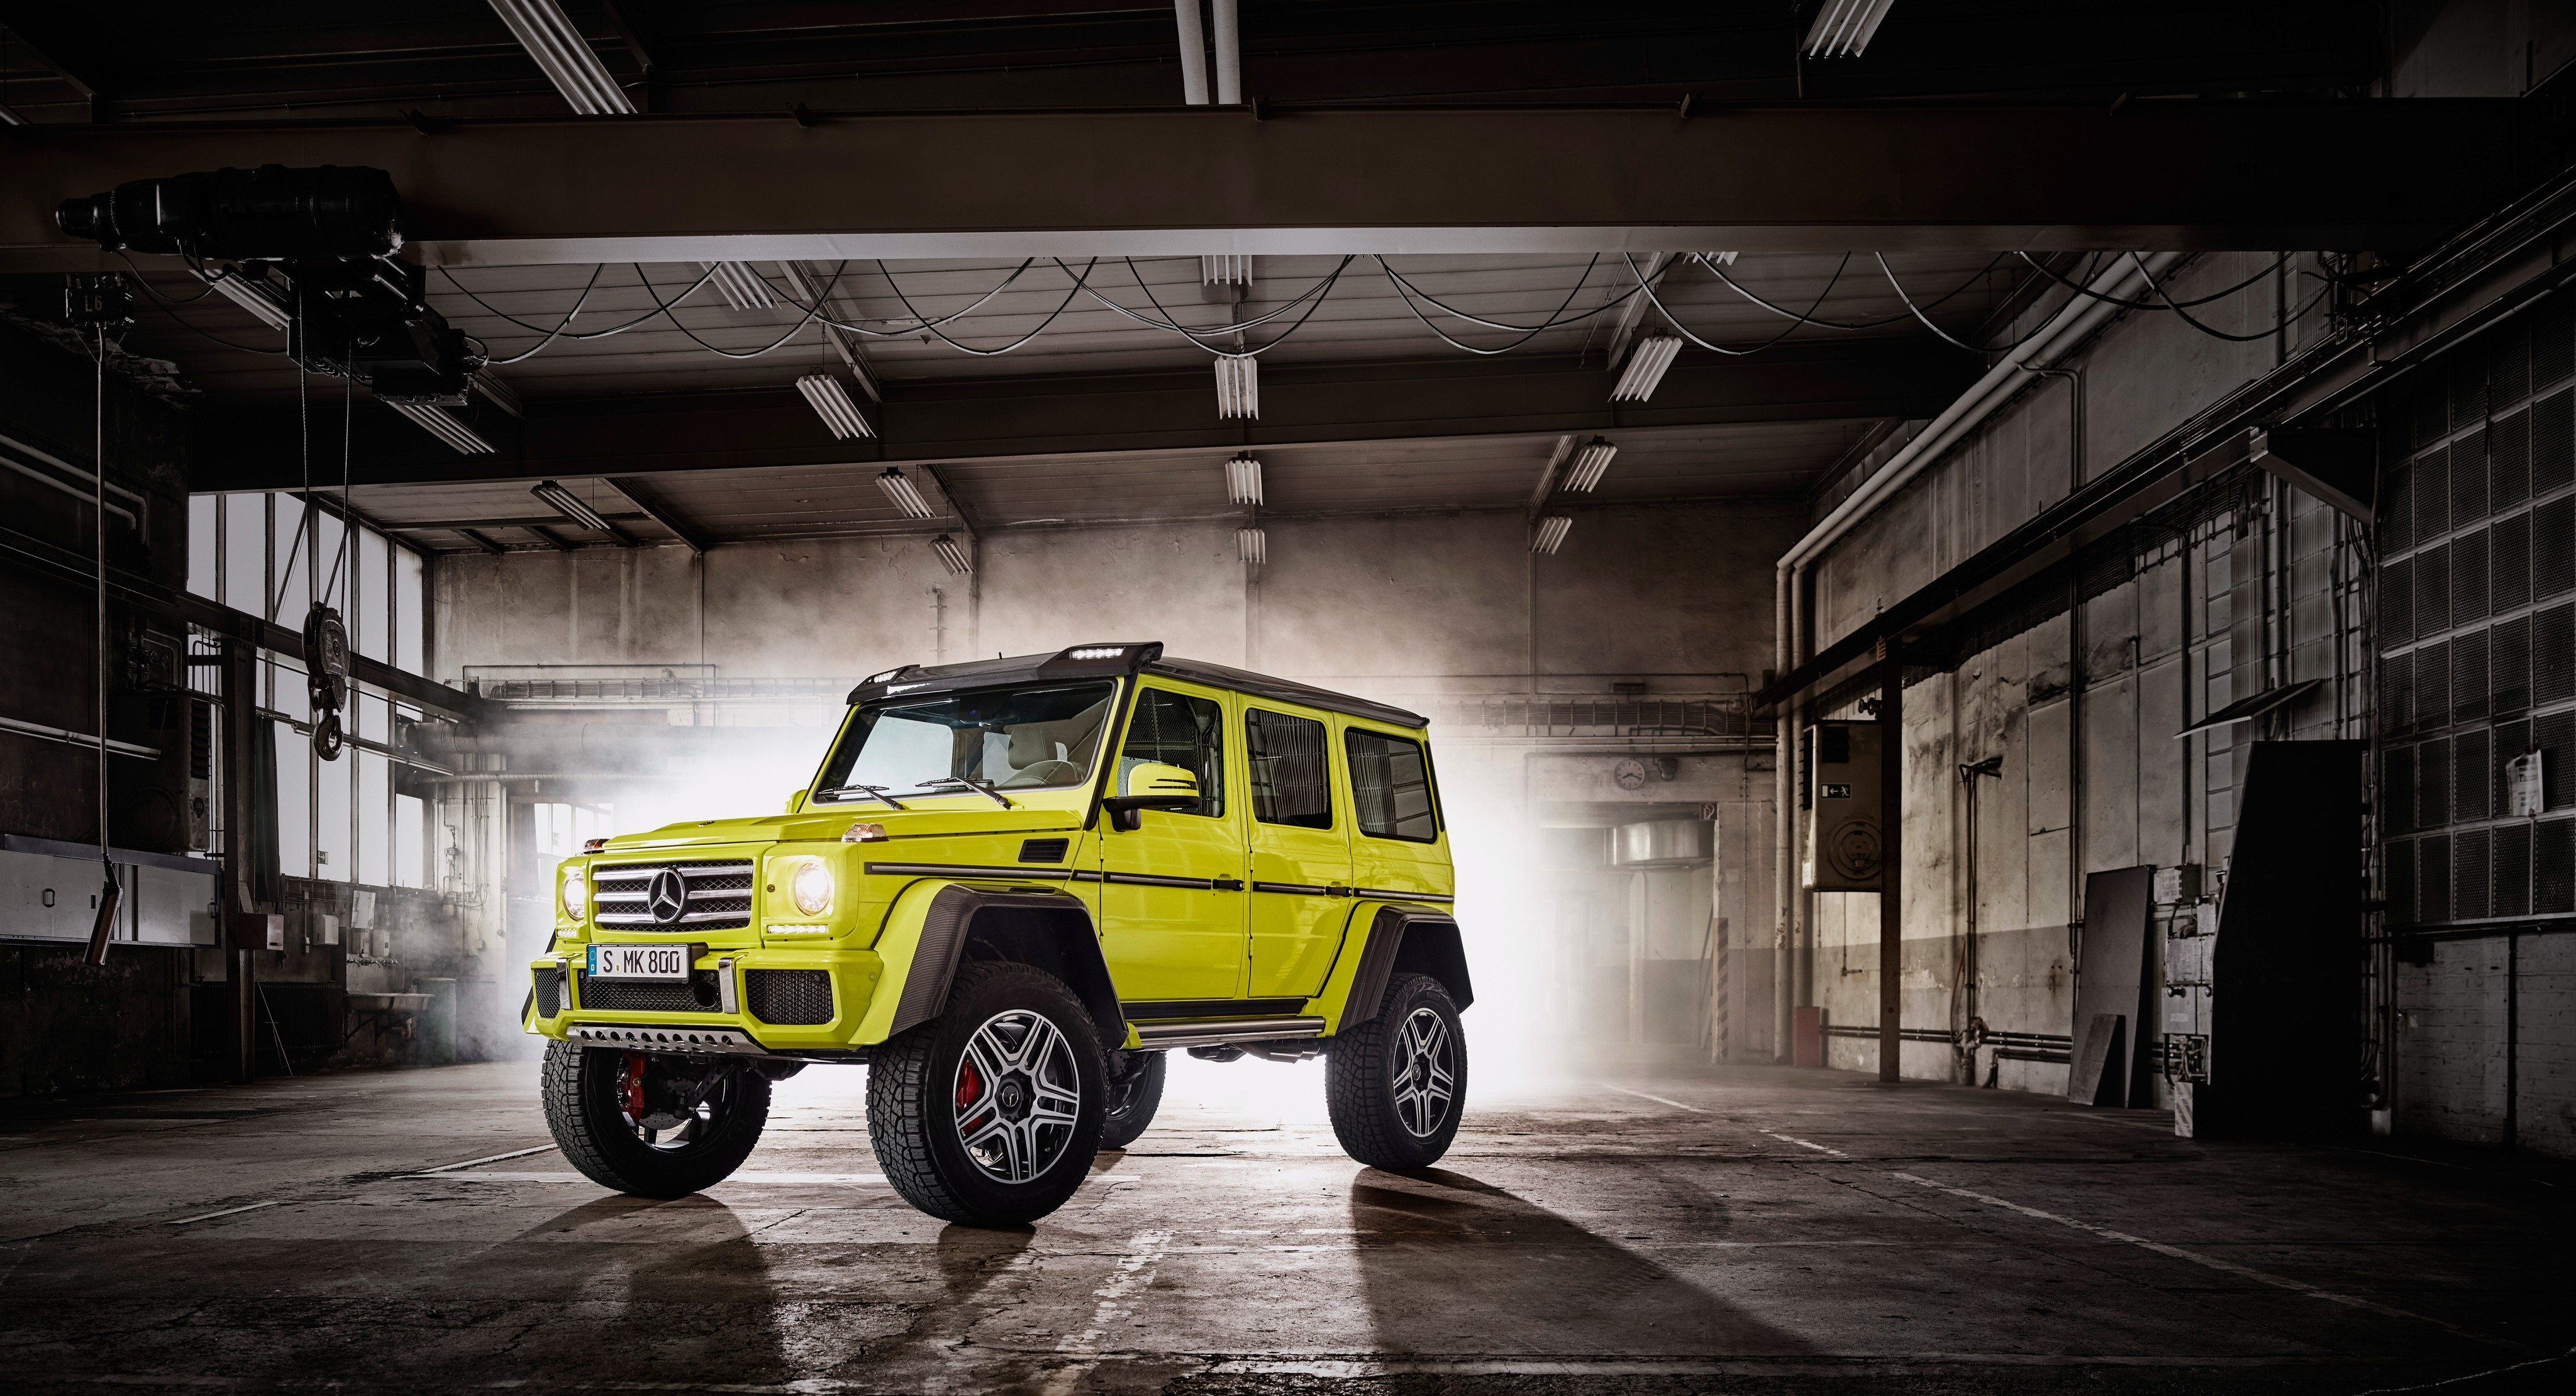 2017 mercedes benz g550 4 4 en route to the united states for 2017 mercedes benz g550